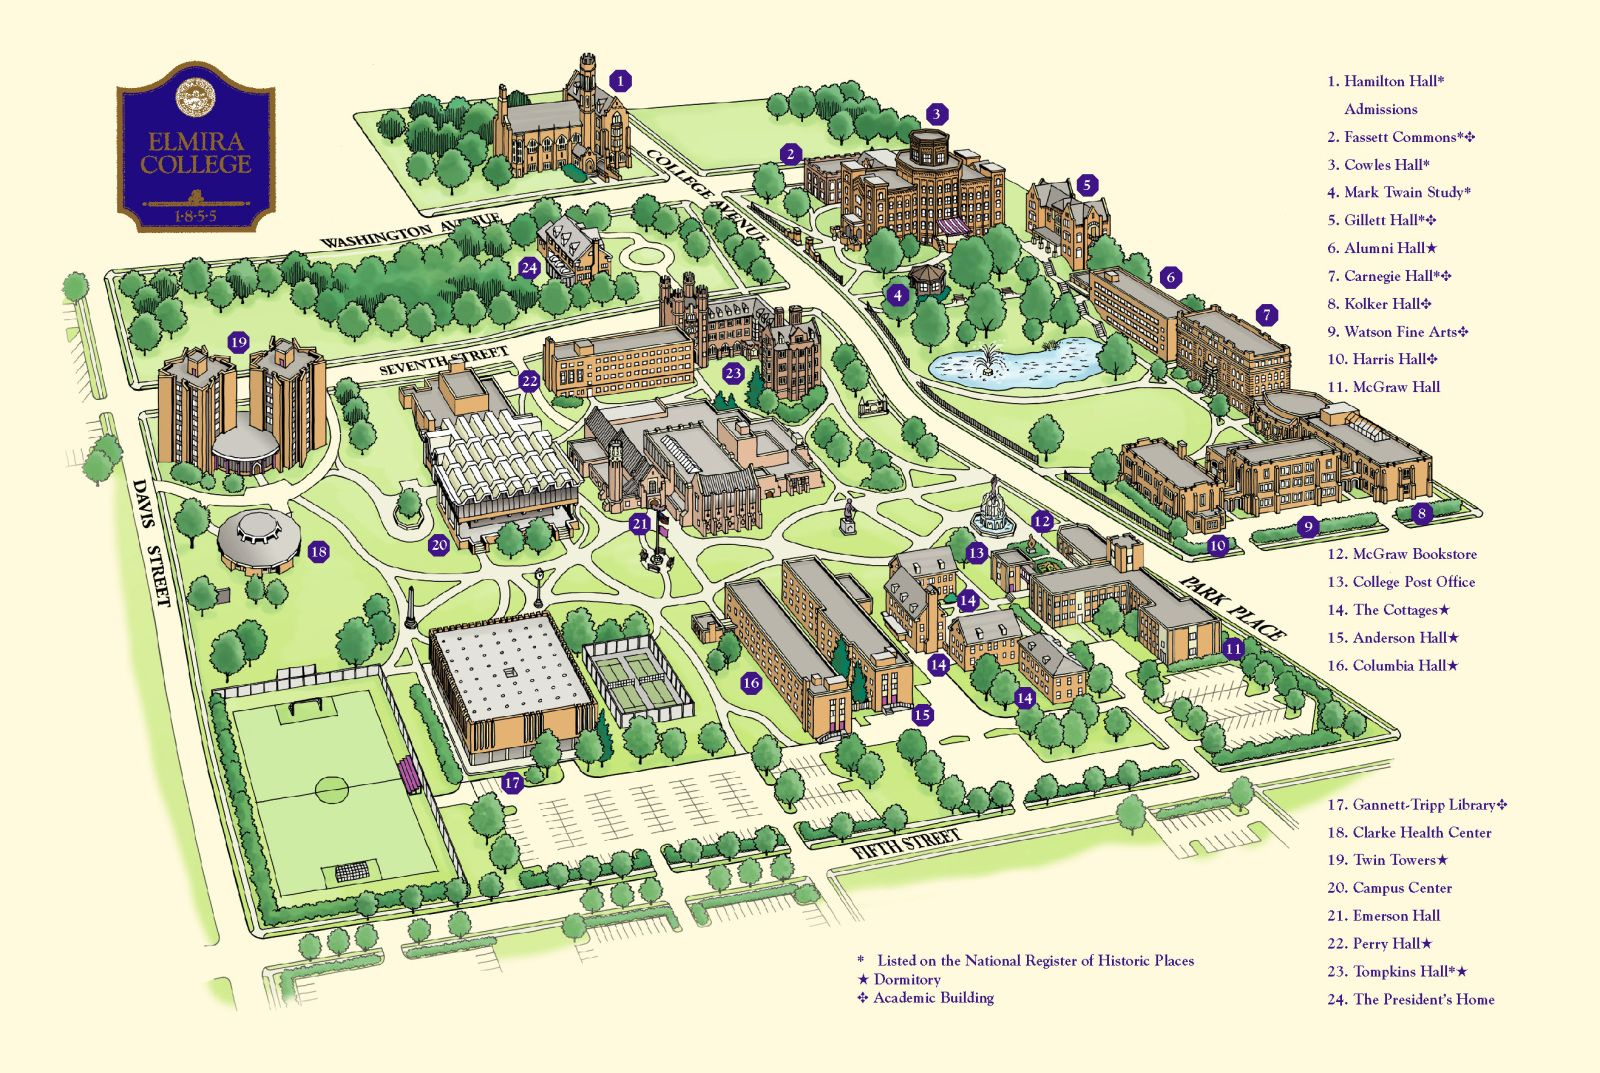 Campus map, Elmira College | Campus map, Elmira college ... on university of wisconsin-madison campus map, naval postgraduate school campus map, north texas university campus map, university of tennessee at chattanooga campus map, southern arkansas university campus map, monterey university campus map, washington & jefferson college campus map, rhode island university campus map, armstrong university campus map, salt lake community college campus map, un reno campus map, saint johns university campus map, california state university bakersfield campus map, uc davis campus map, the university of toledo campus map, tennessee technological university campus map, western state colorado university campus map, university of texas at san antonio campus map, university of louisiana at monroe campus map, golden gate university campus map,